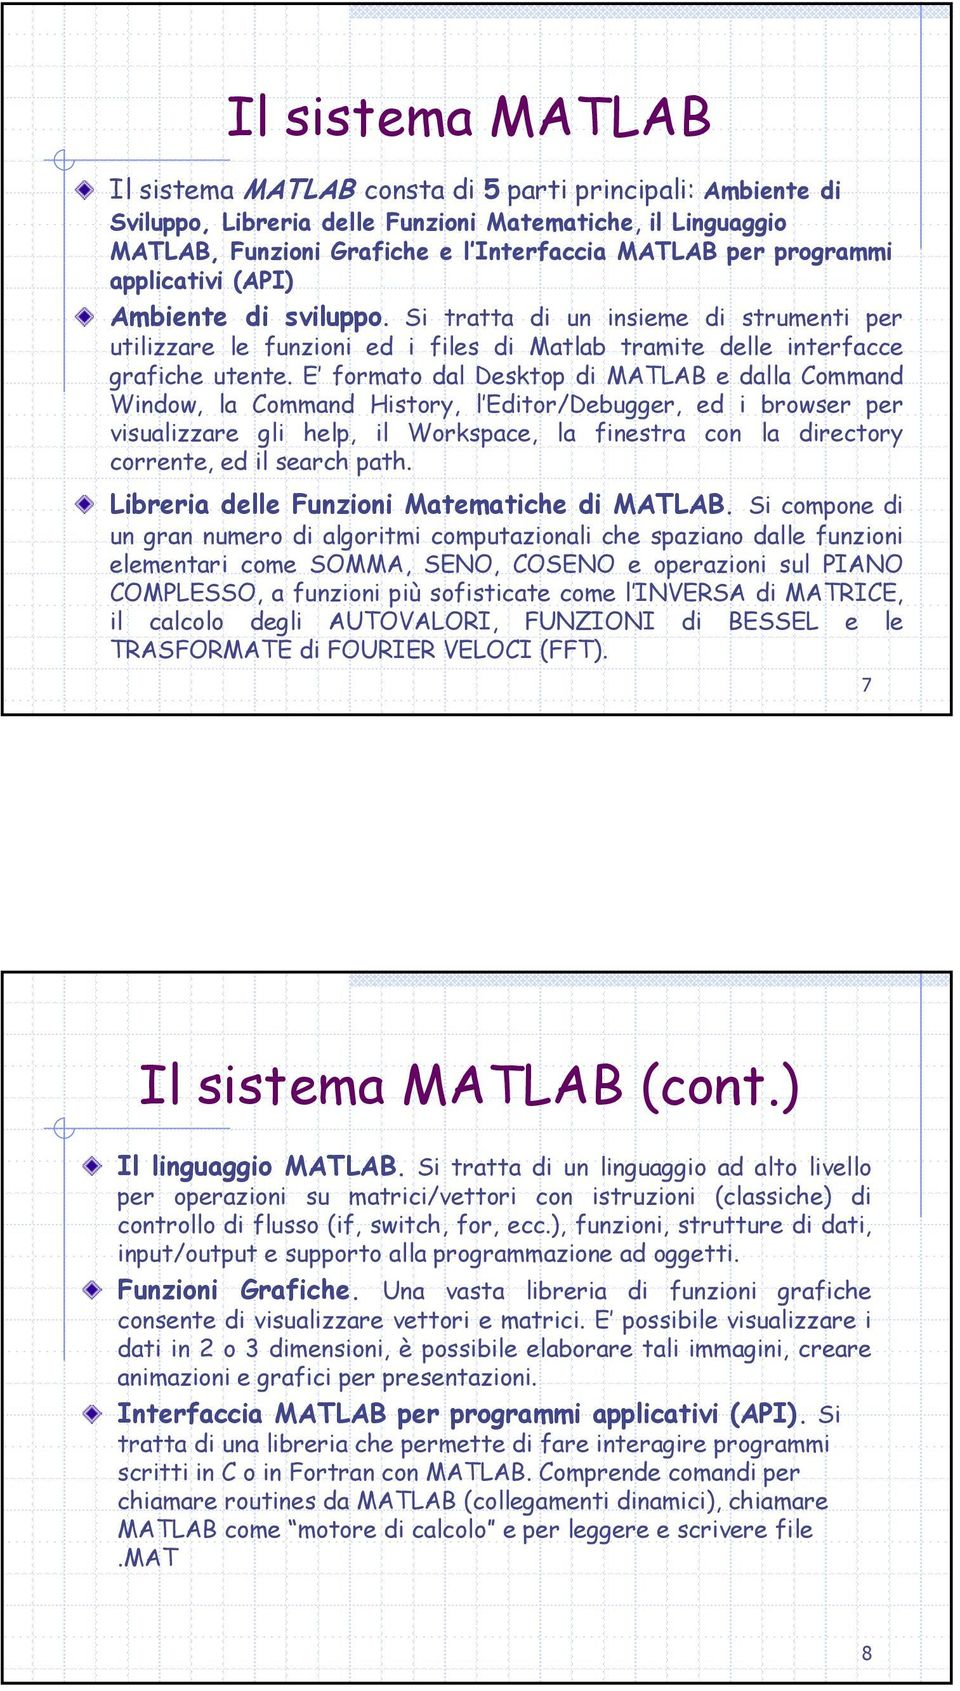 E formato dal Desktop di MATLAB e dalla Command Window, la Command History, l Editor/Debugger, ed i browser per visualizzare gli help, il Workspace, la finestra con la directory corrente, ed il